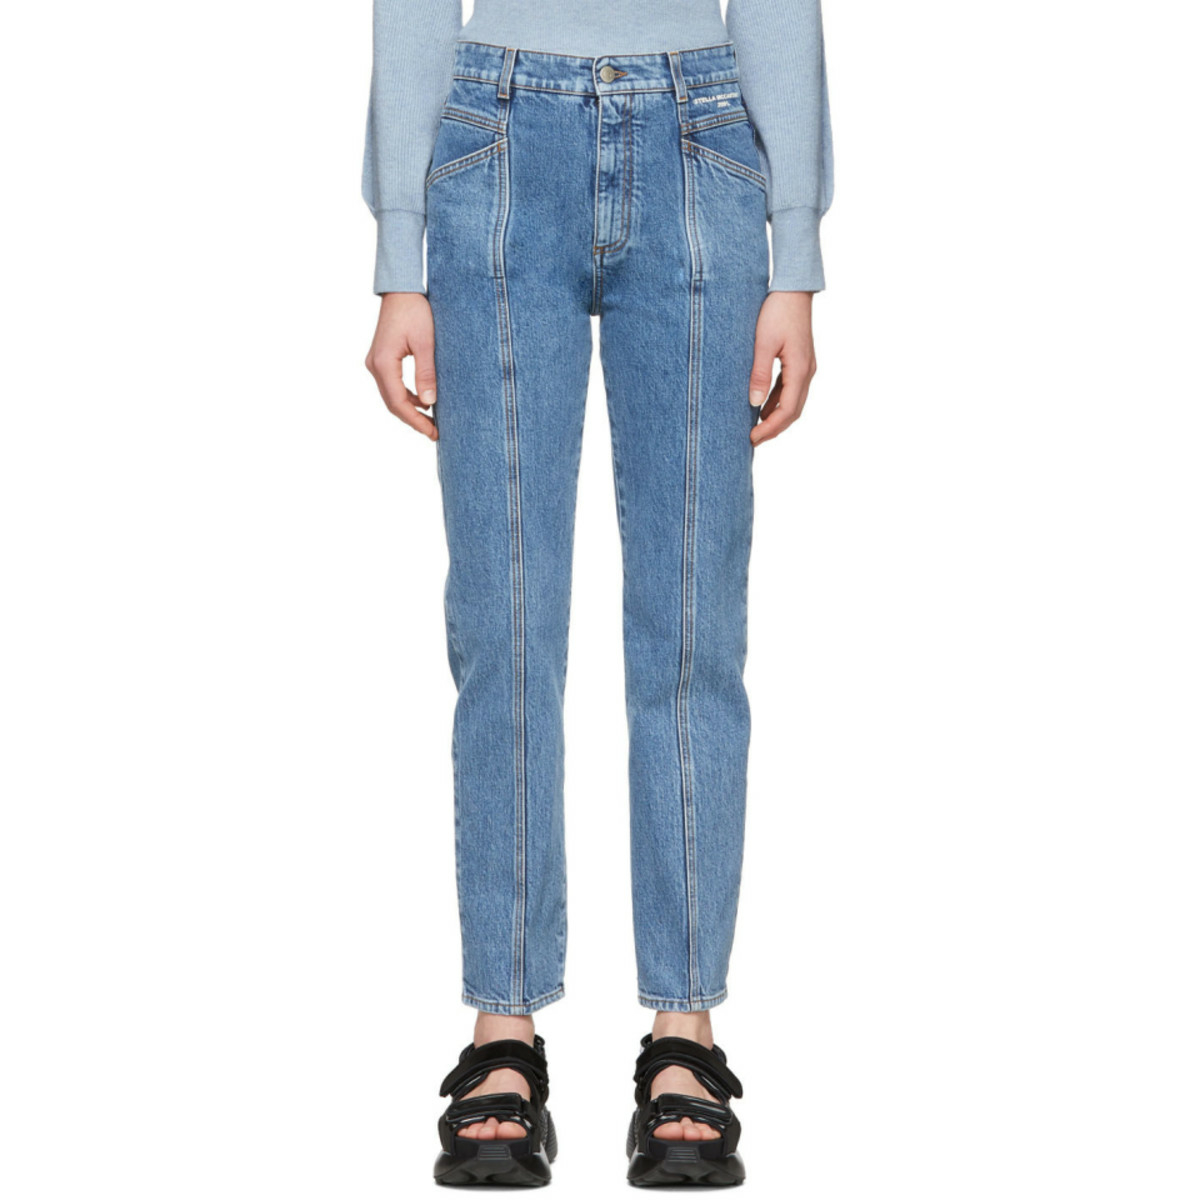 Women FASHION - GOOFASH - Womens JEANS